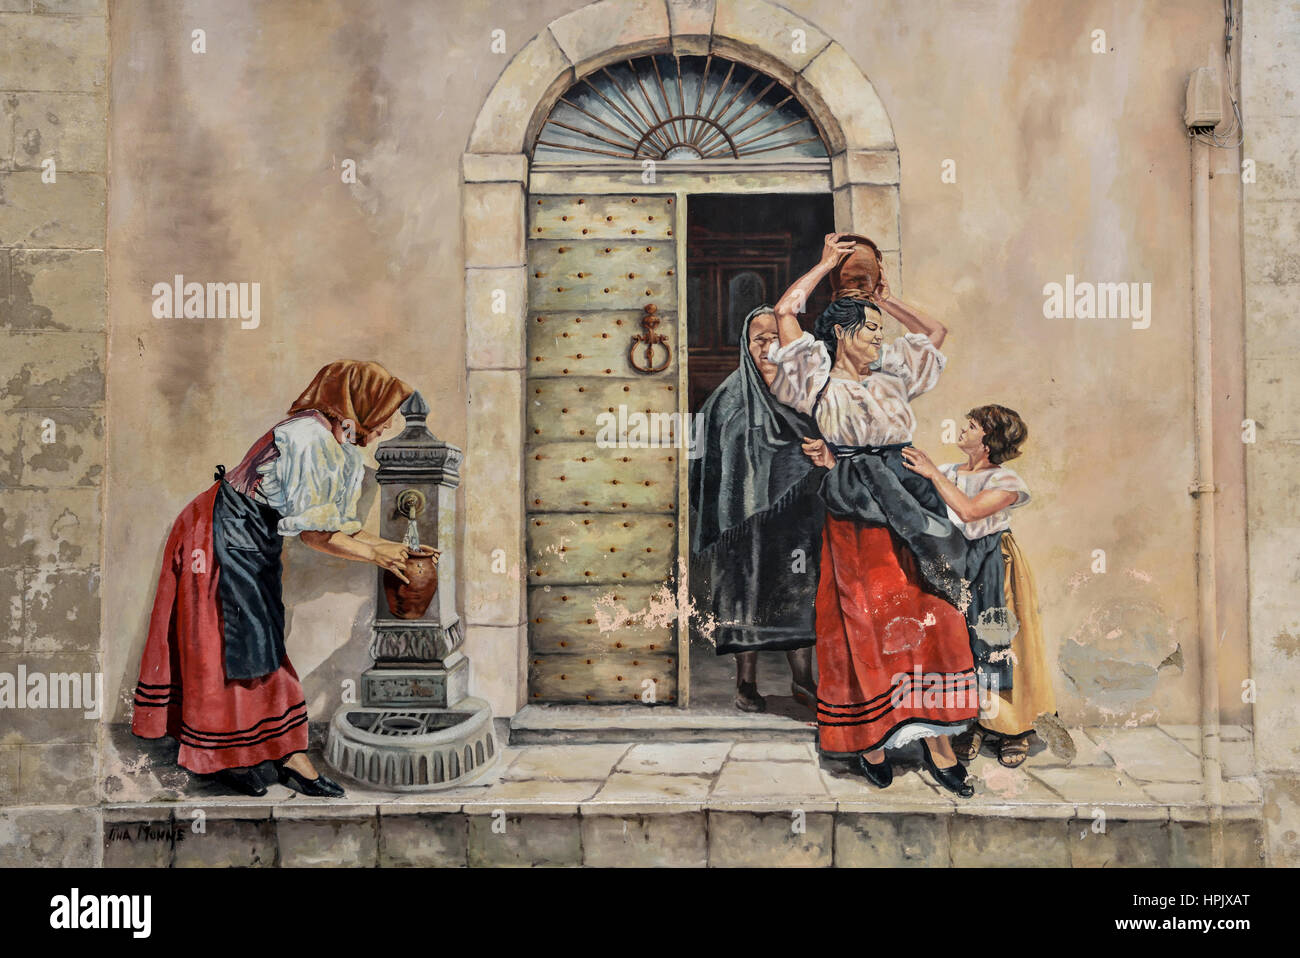 peasant women in the middle ages